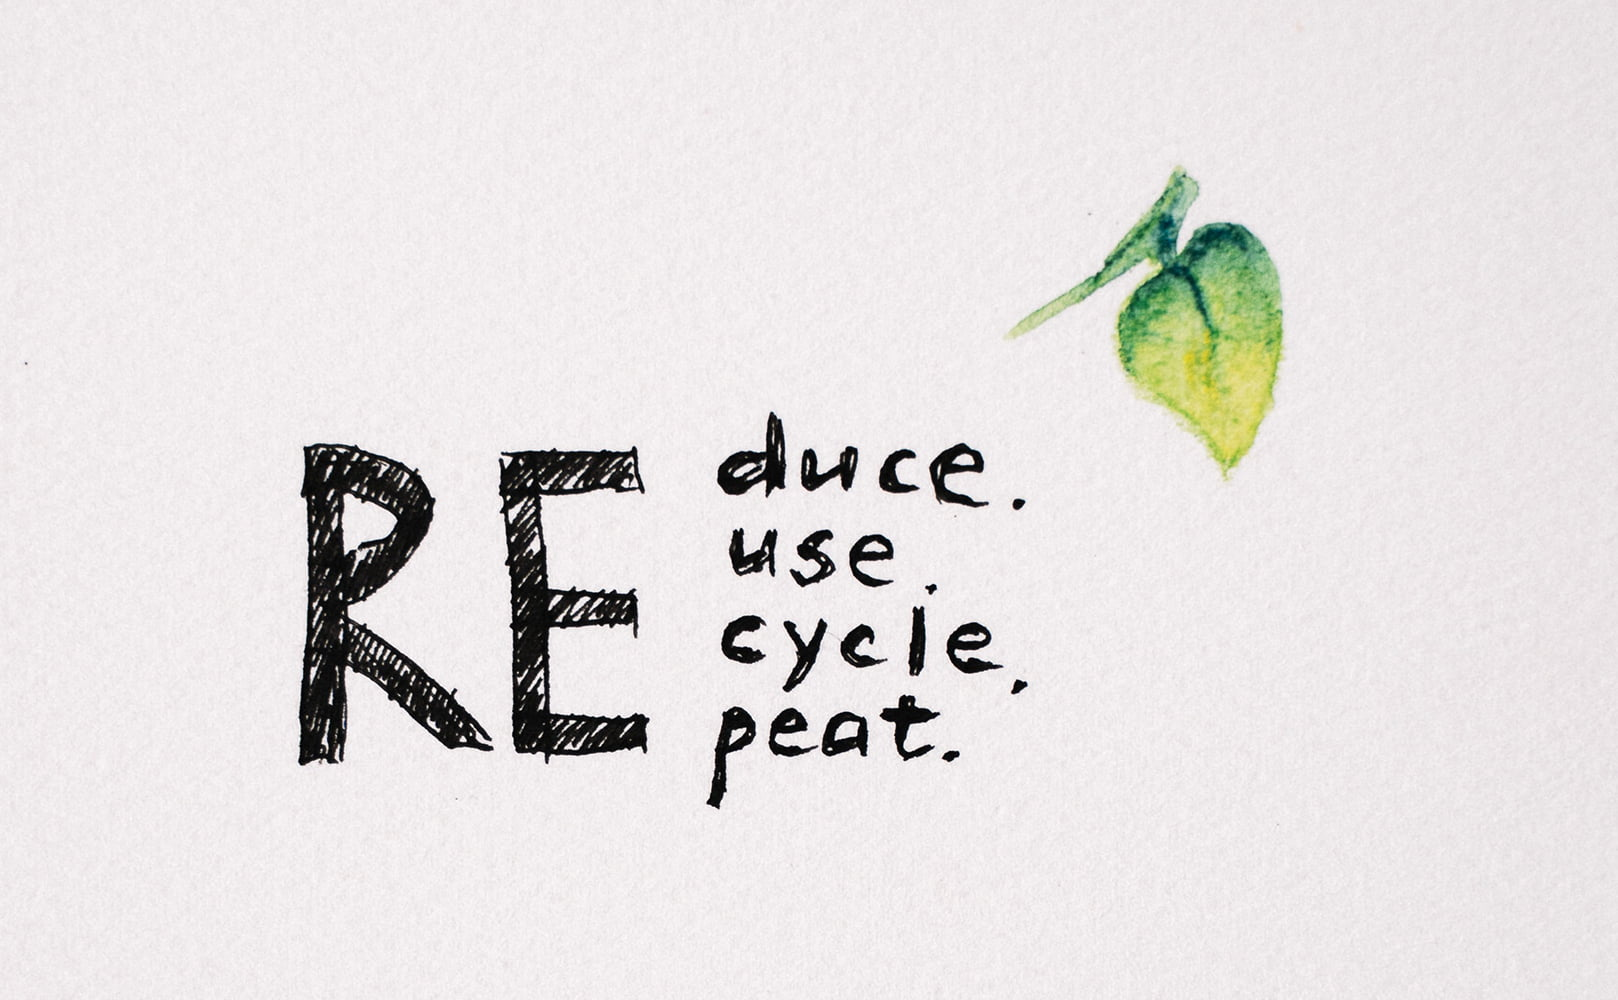 Paper Saying Reduce Reduce Recycle Repeat